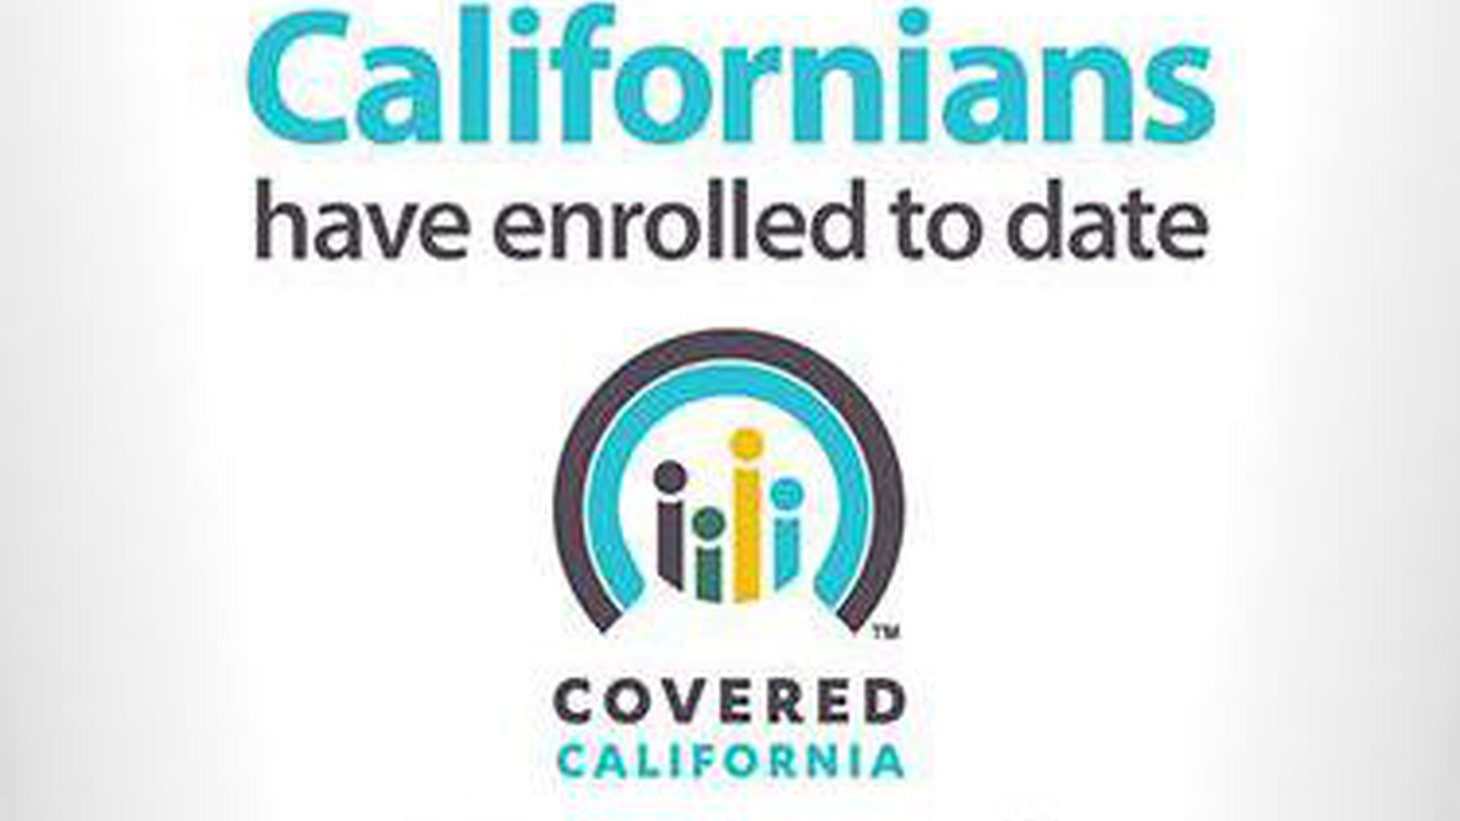 Initial enrollment numbers for the Affordable Care Act were made public today, and California leads the nation with 35,000. But that's hardly a victory for Obamacare. In all 36 states where the federal government is in charge, the total was 27,000 — and the nationwide number is 10% of what had been hoped for. We hear what that could mean for affordable health insurance.